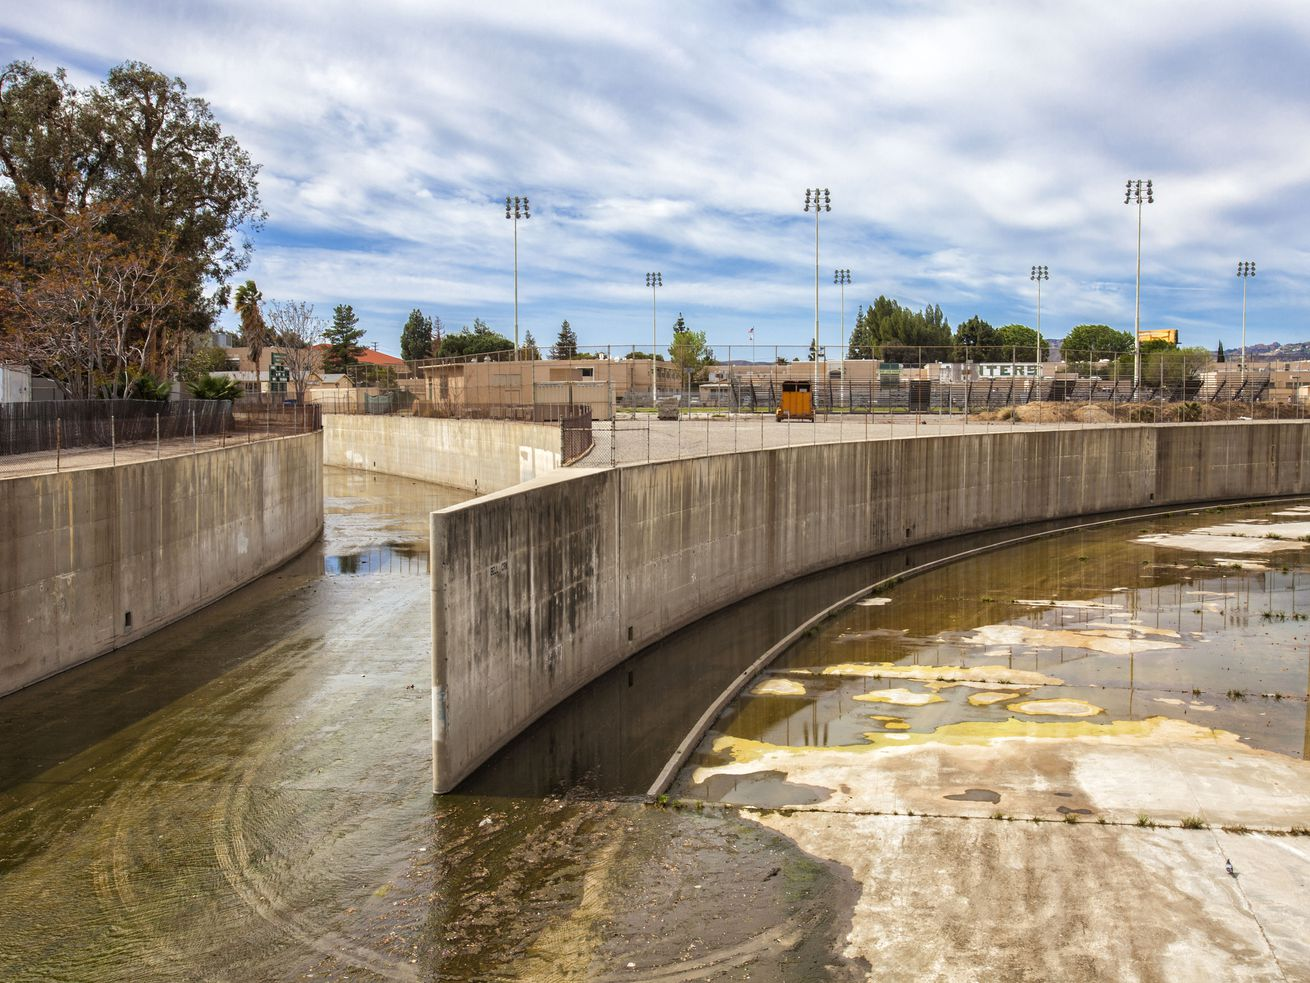 The beginning of the Los Angeles River at the confluence of Bell Creek and Arroyo Calabasas in Canoga Park.